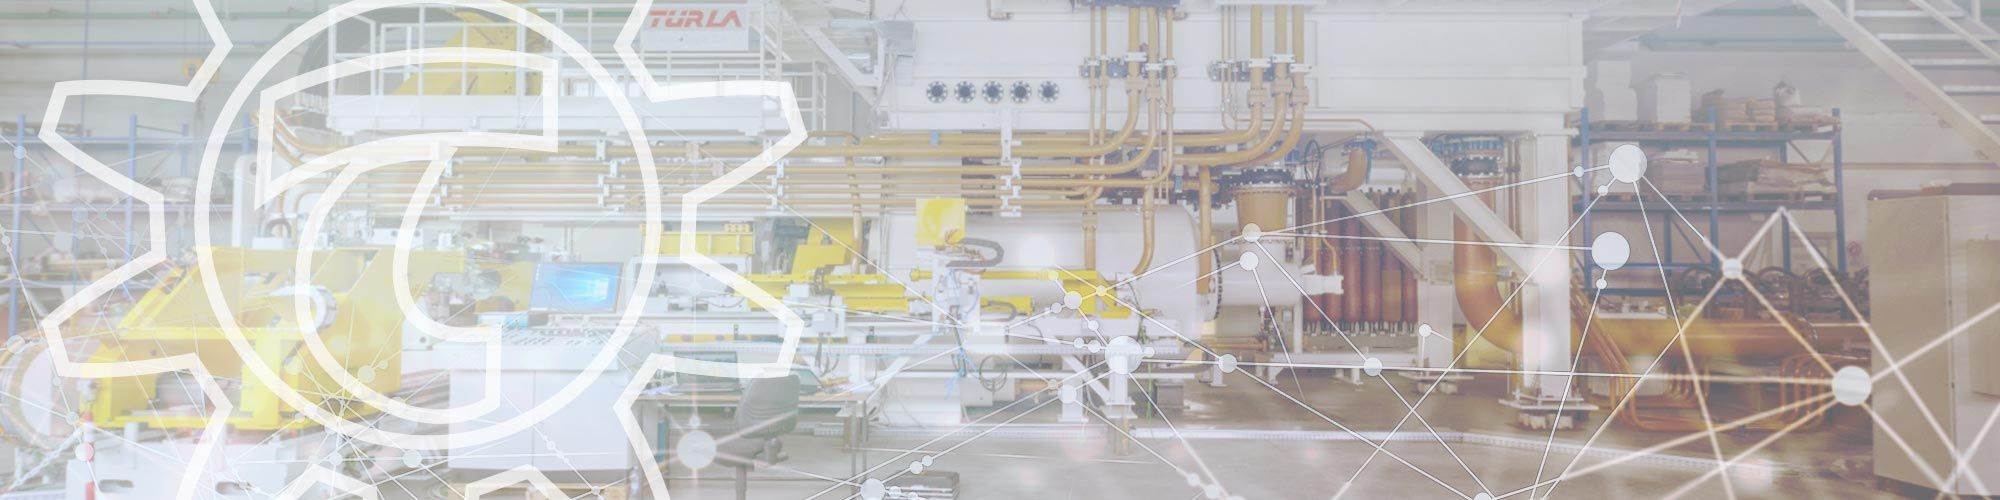 Extrusion Handling System